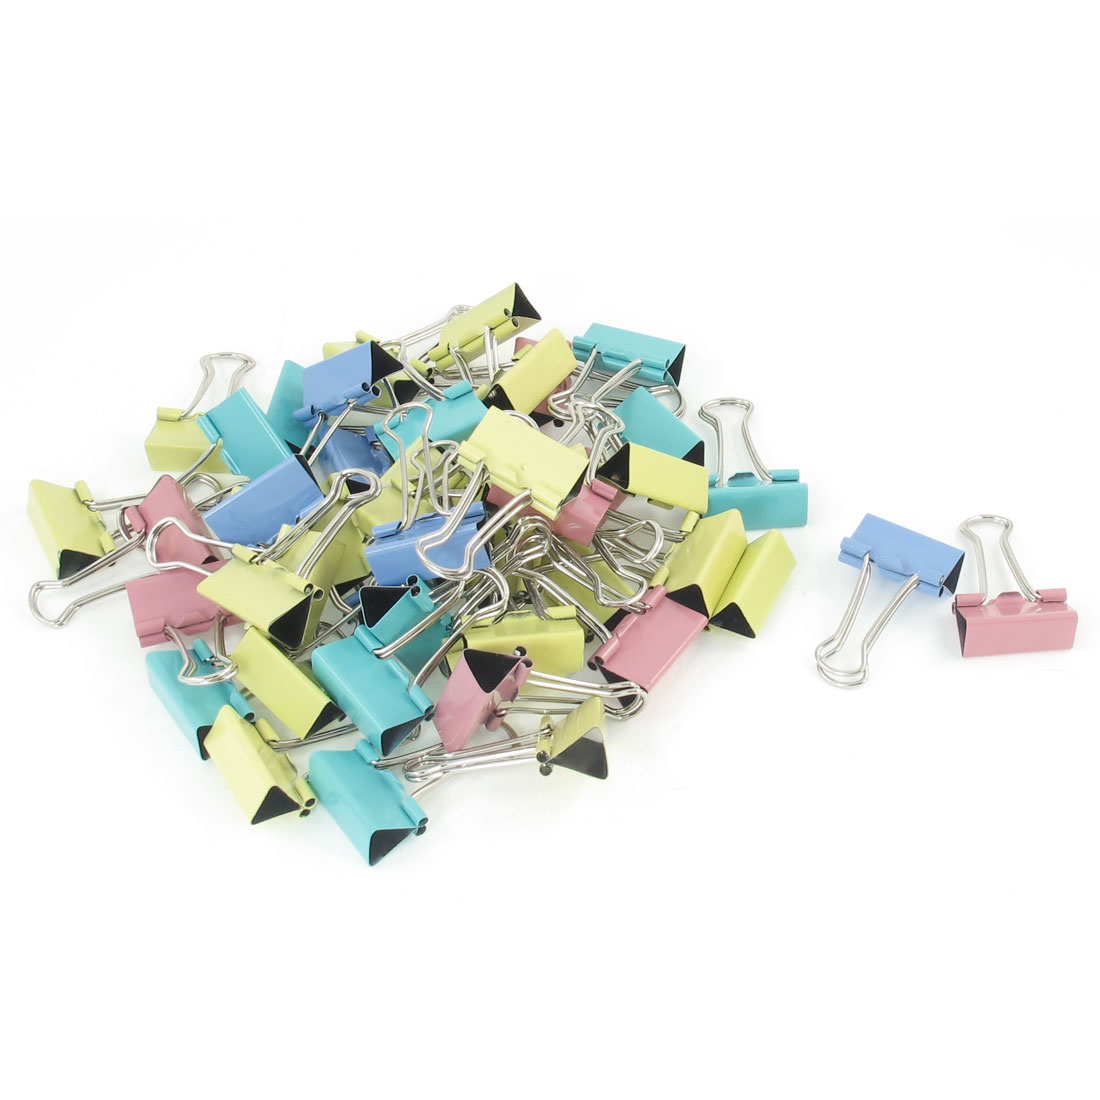 48 Pcs School Office 4 Colors Paper Document Metal Binder Clips